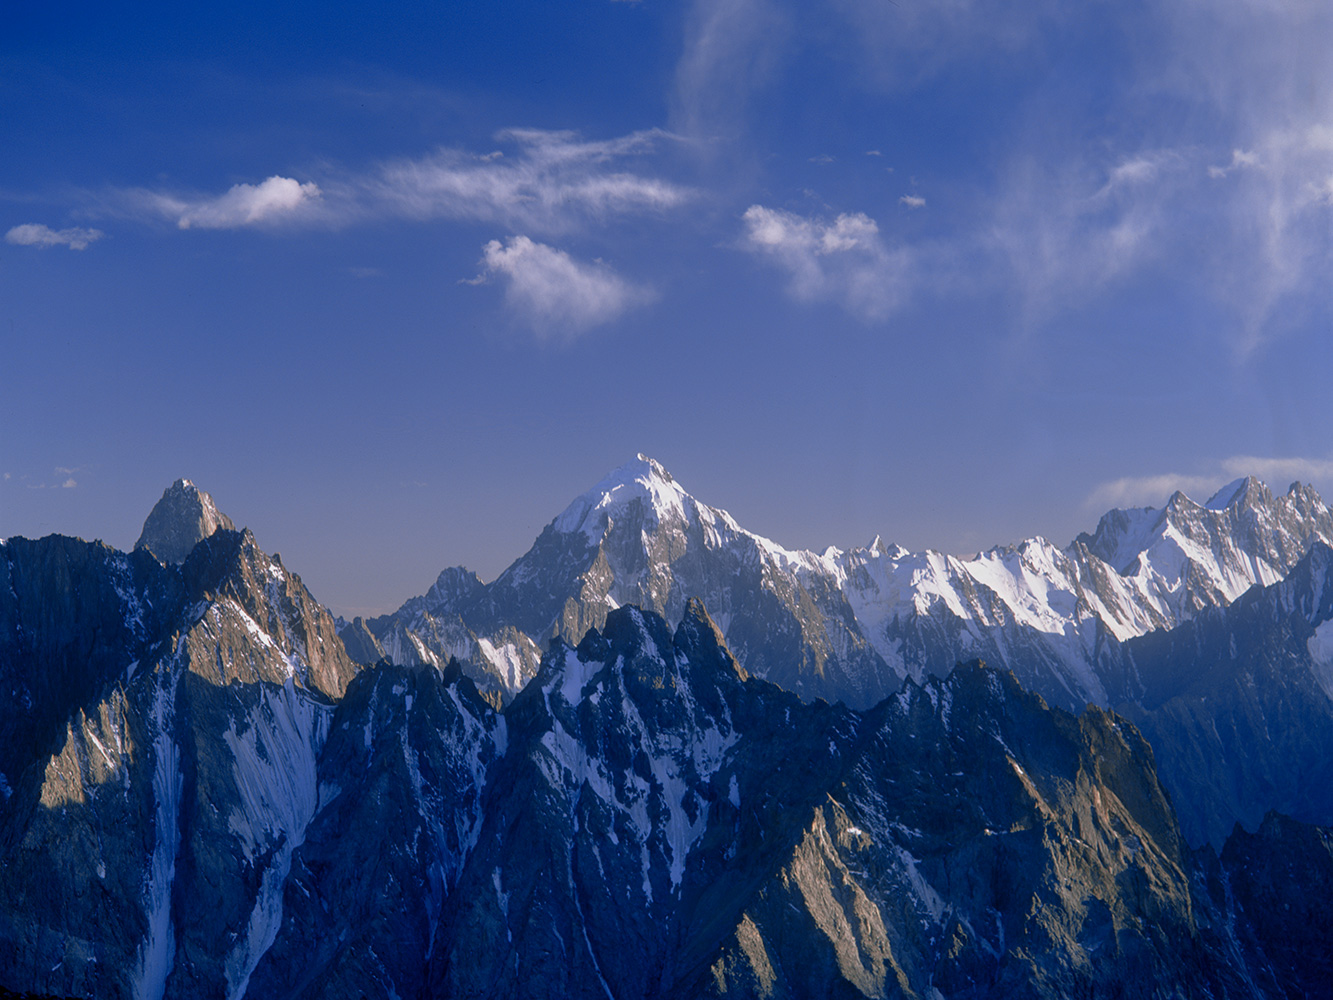 A view of the peaks of Ishkoman from this high camp beneath the western side of the Chillinji Pass